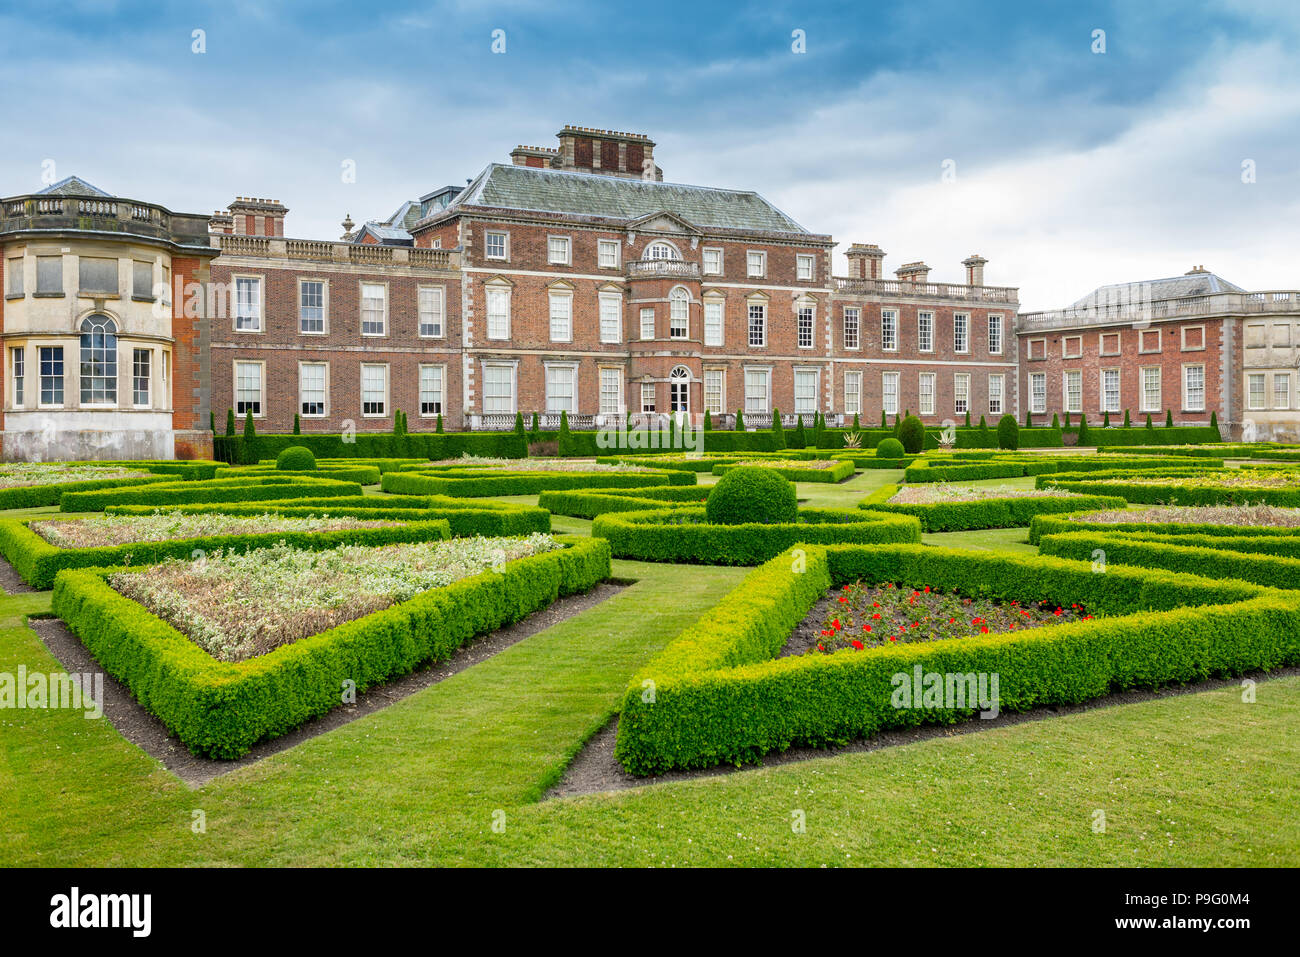 wimpole hall a country house located in wimpole estate rh alamy com